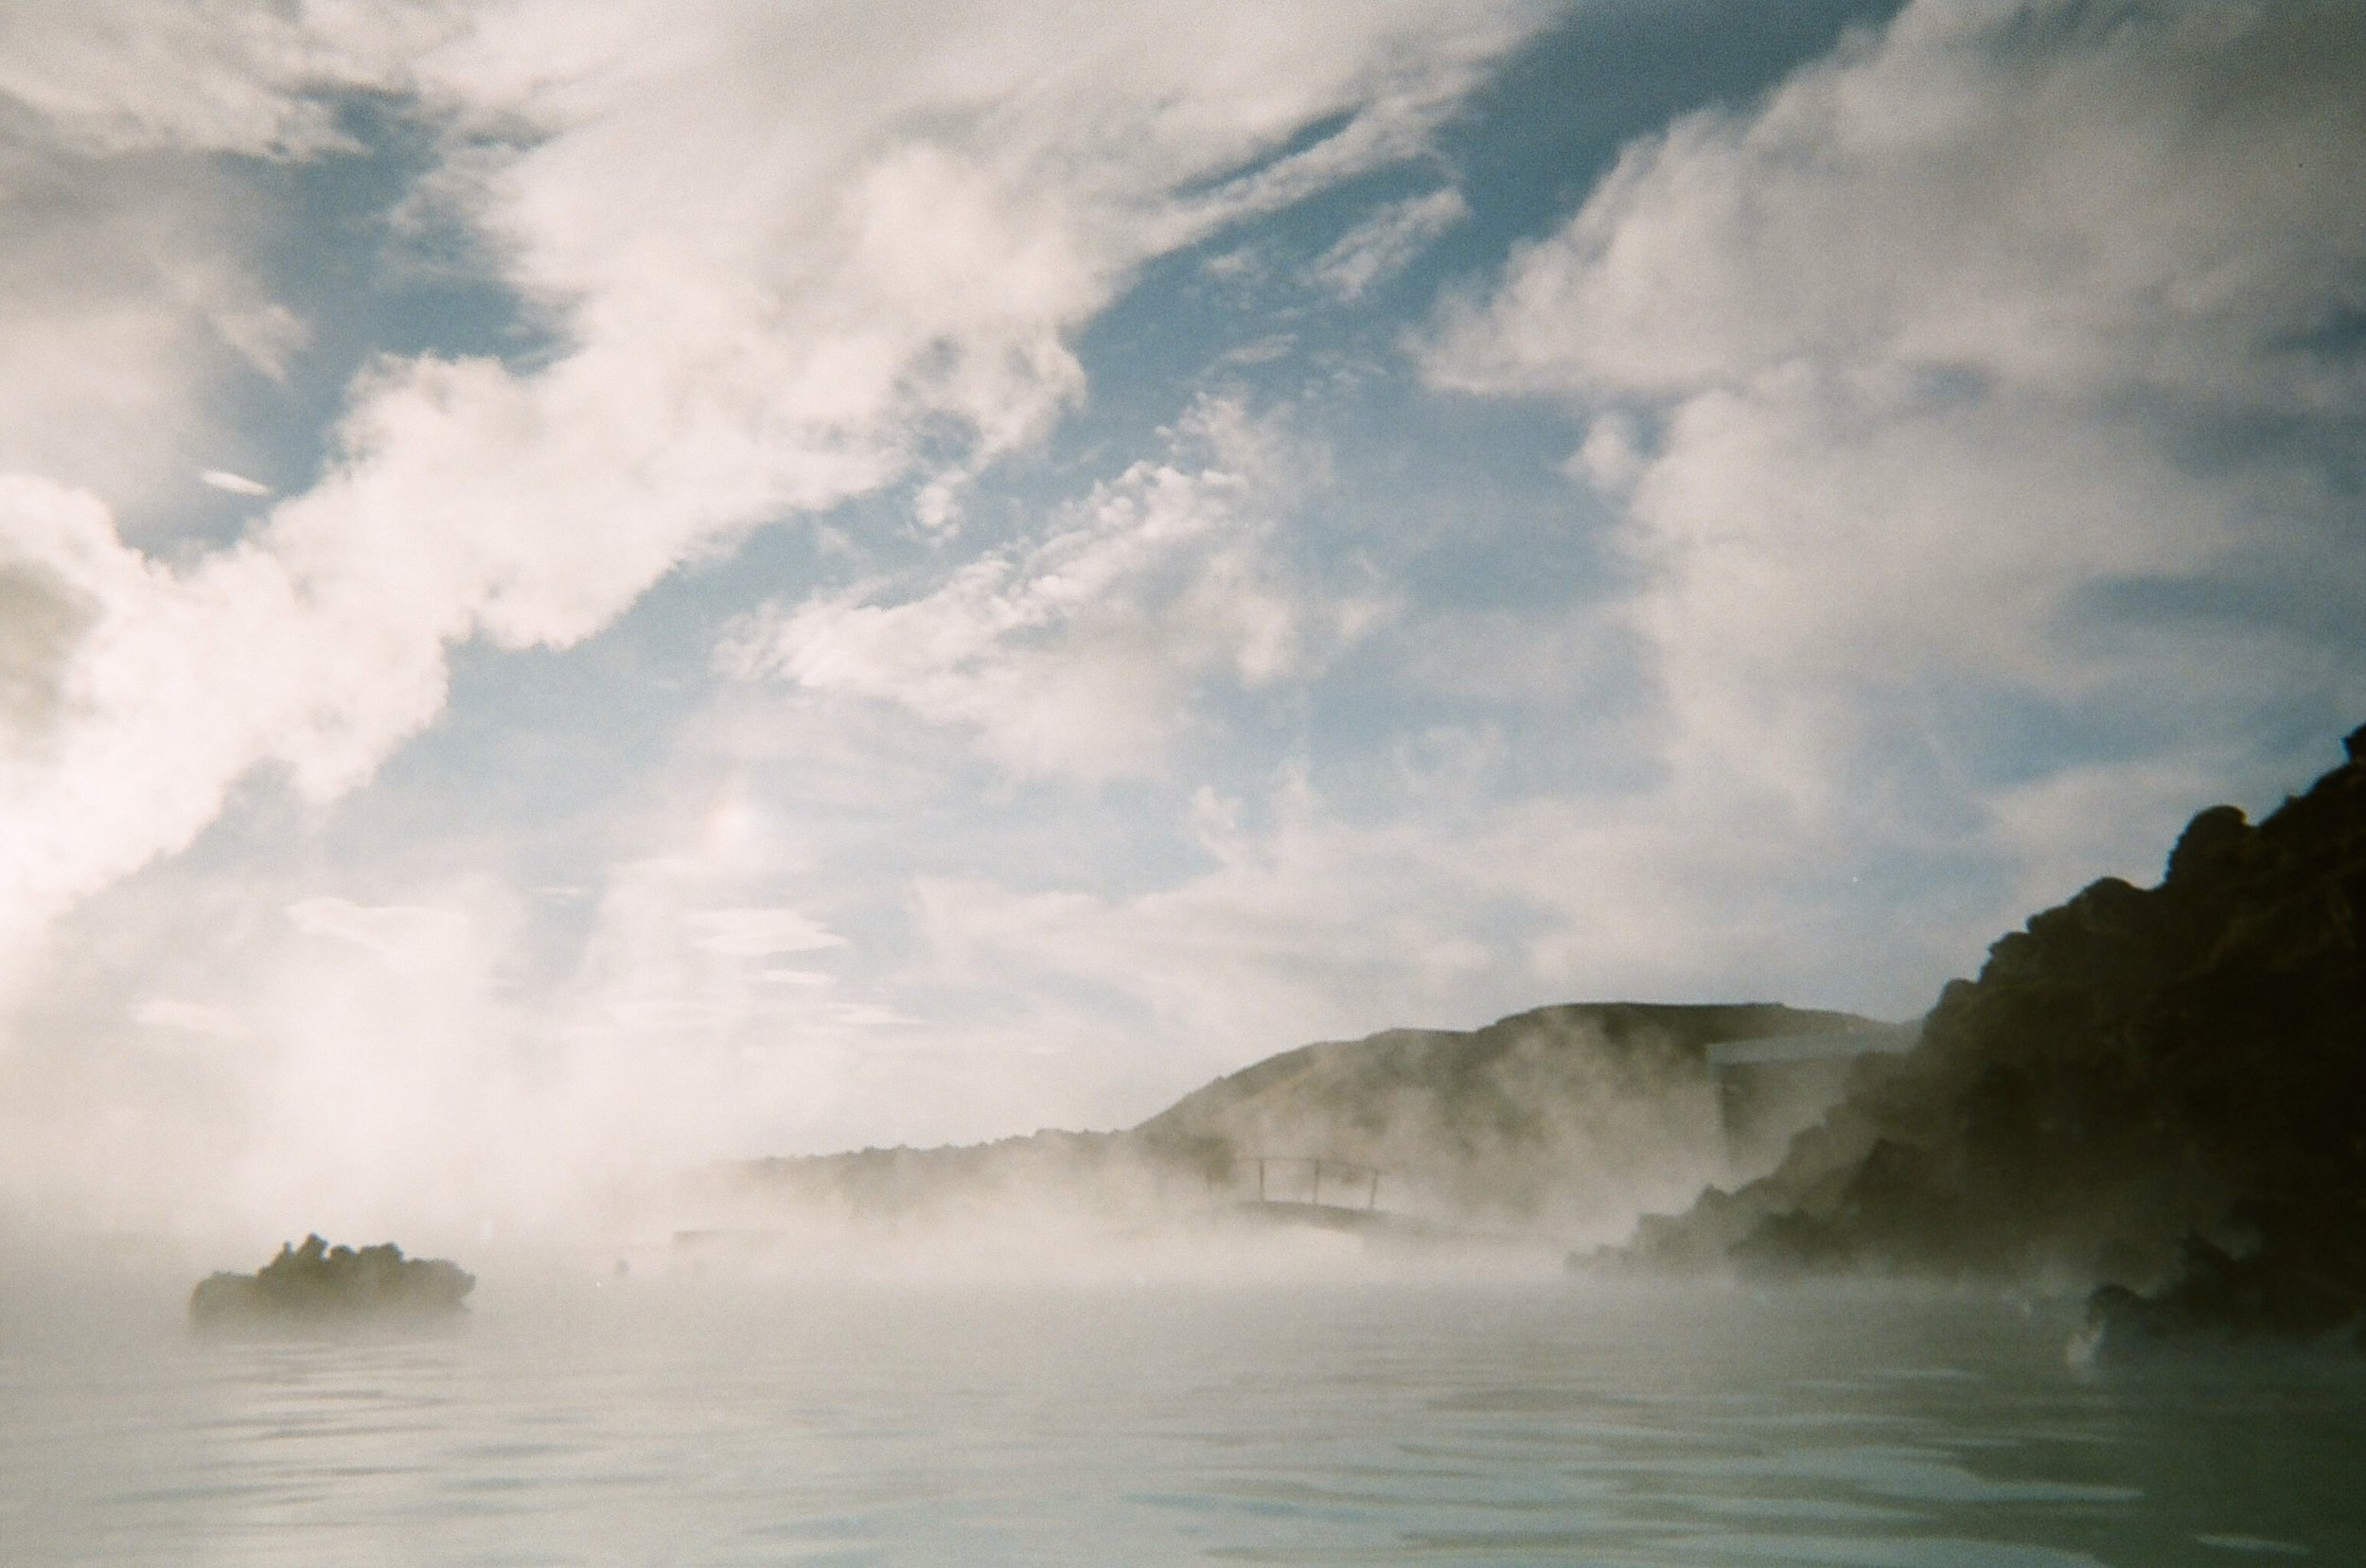 Iceland - Blue Lagoon - Travel Photographer